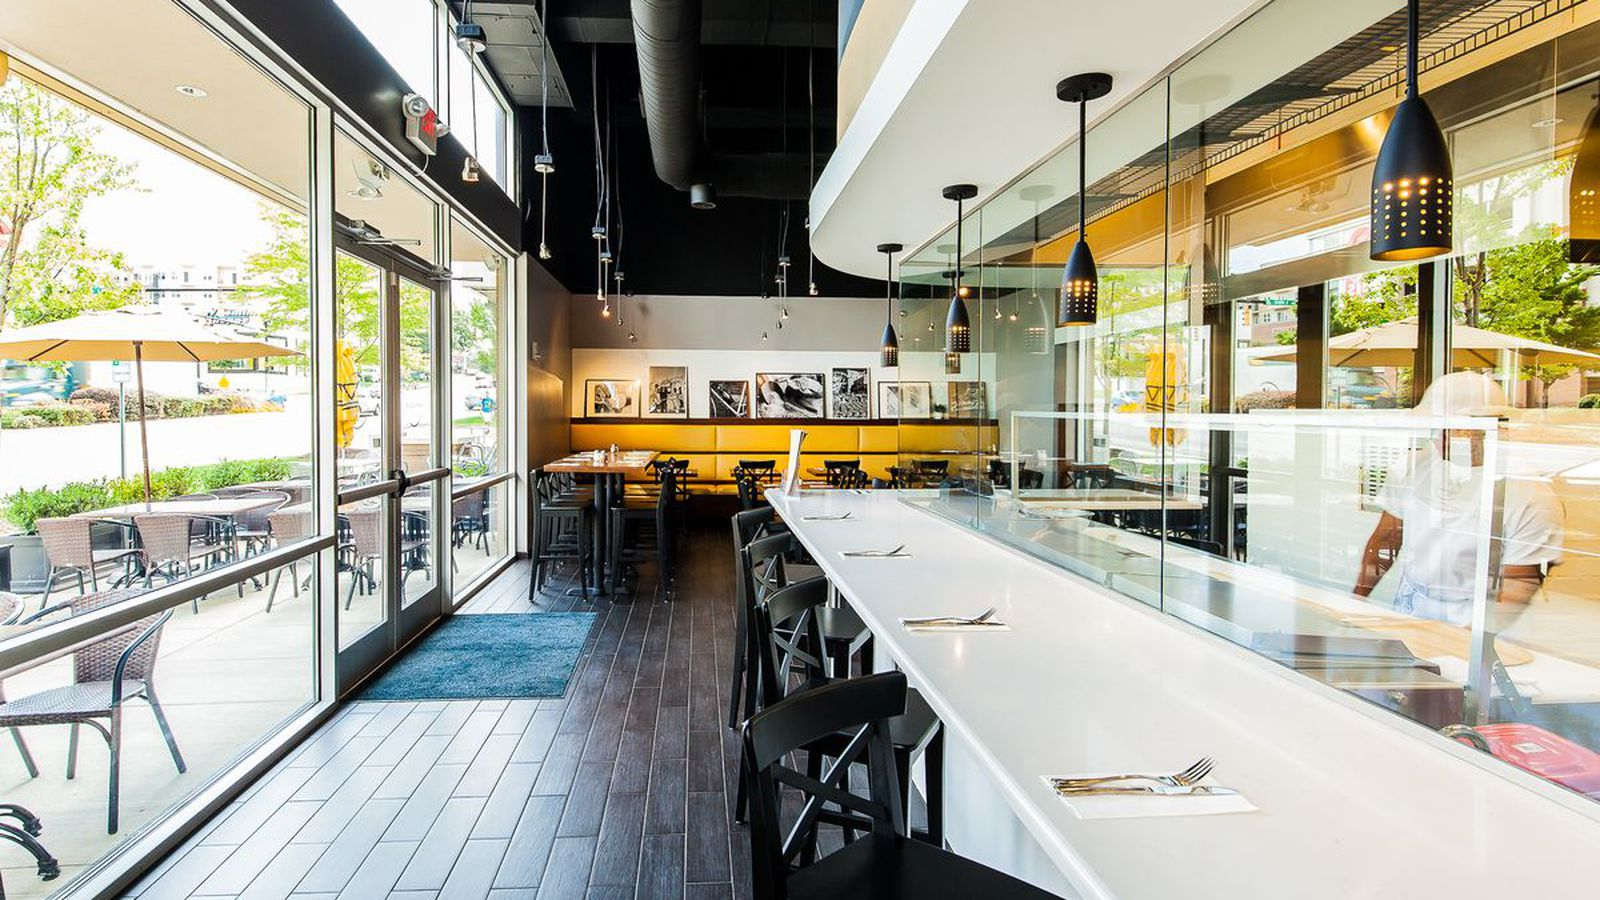 123 Top Cuisine The Hottest New Restaurants In Charlotte November 2015